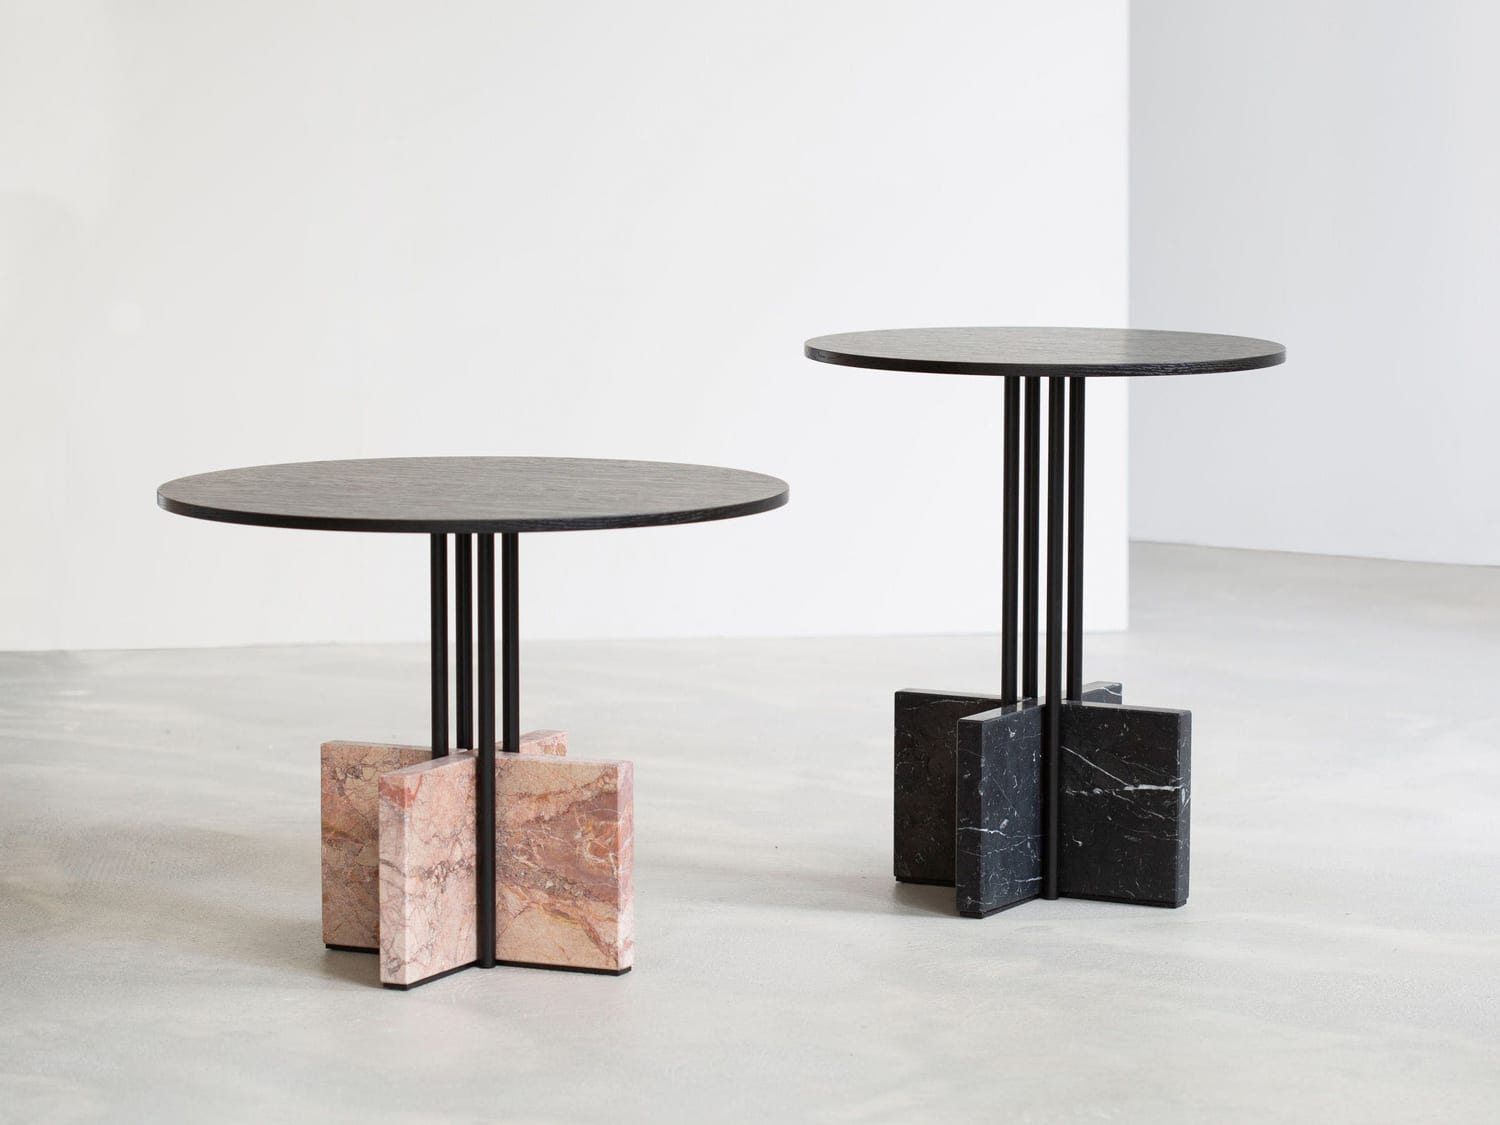 Gravity Table by Hanne Willmann for Favius at Imm Cologne 2019   Yellowtrace